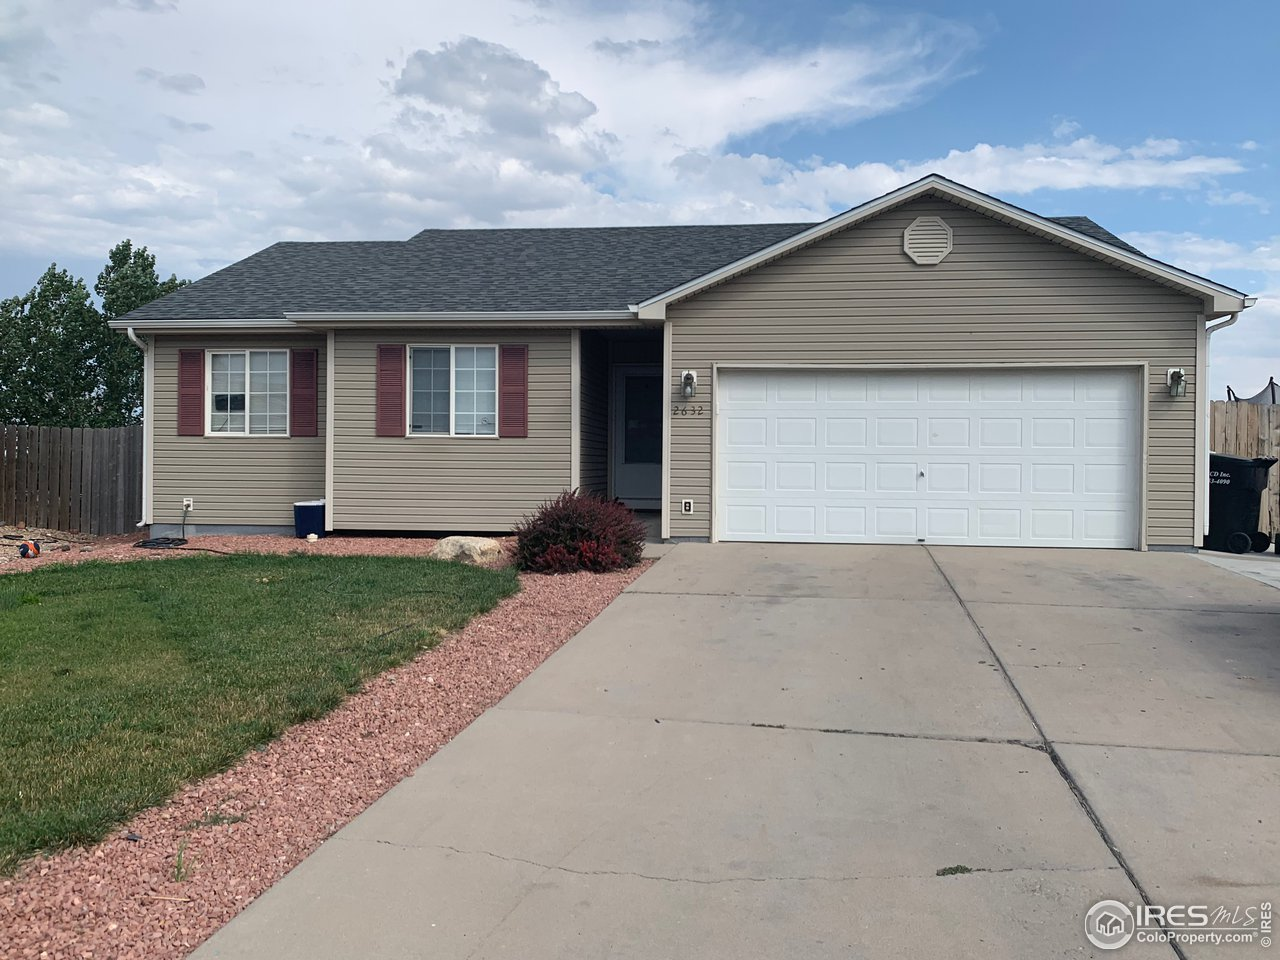 2632 arbor Ave, Greeley CO 80631